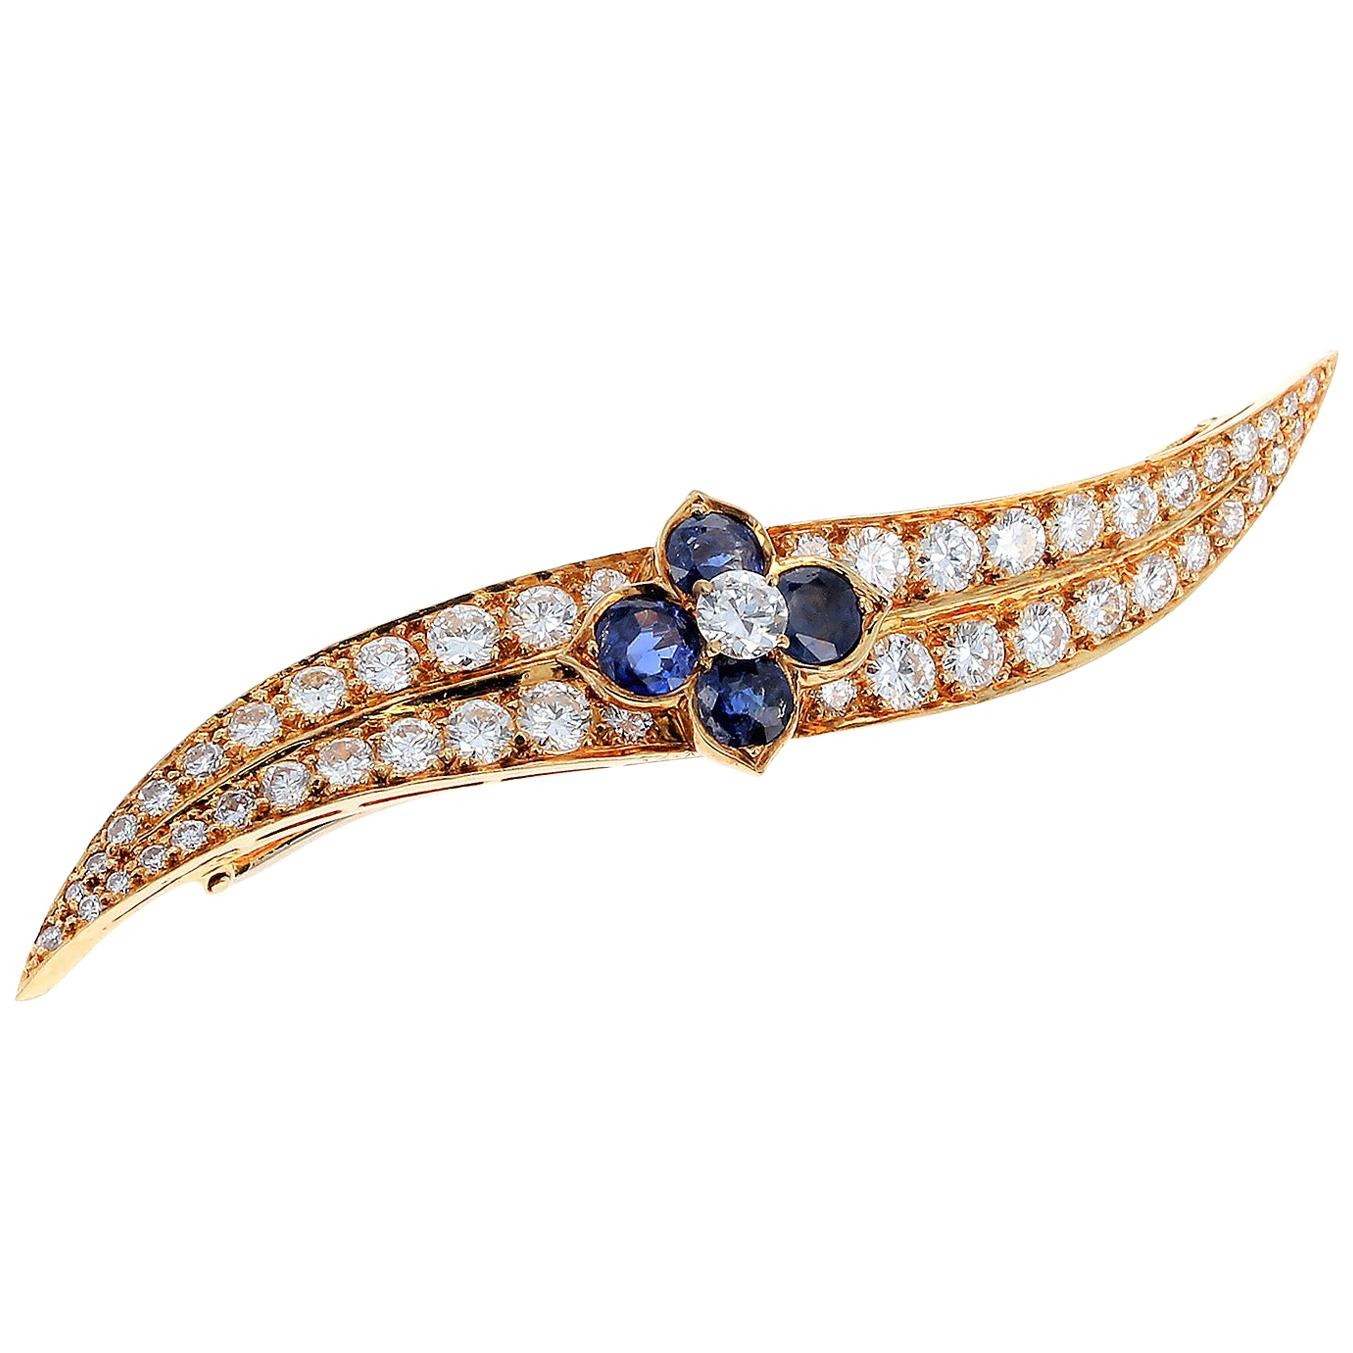 French Van Cleef & Arpels Sapphire Floral and Diamond Pin/Brooch, 18K Yellow